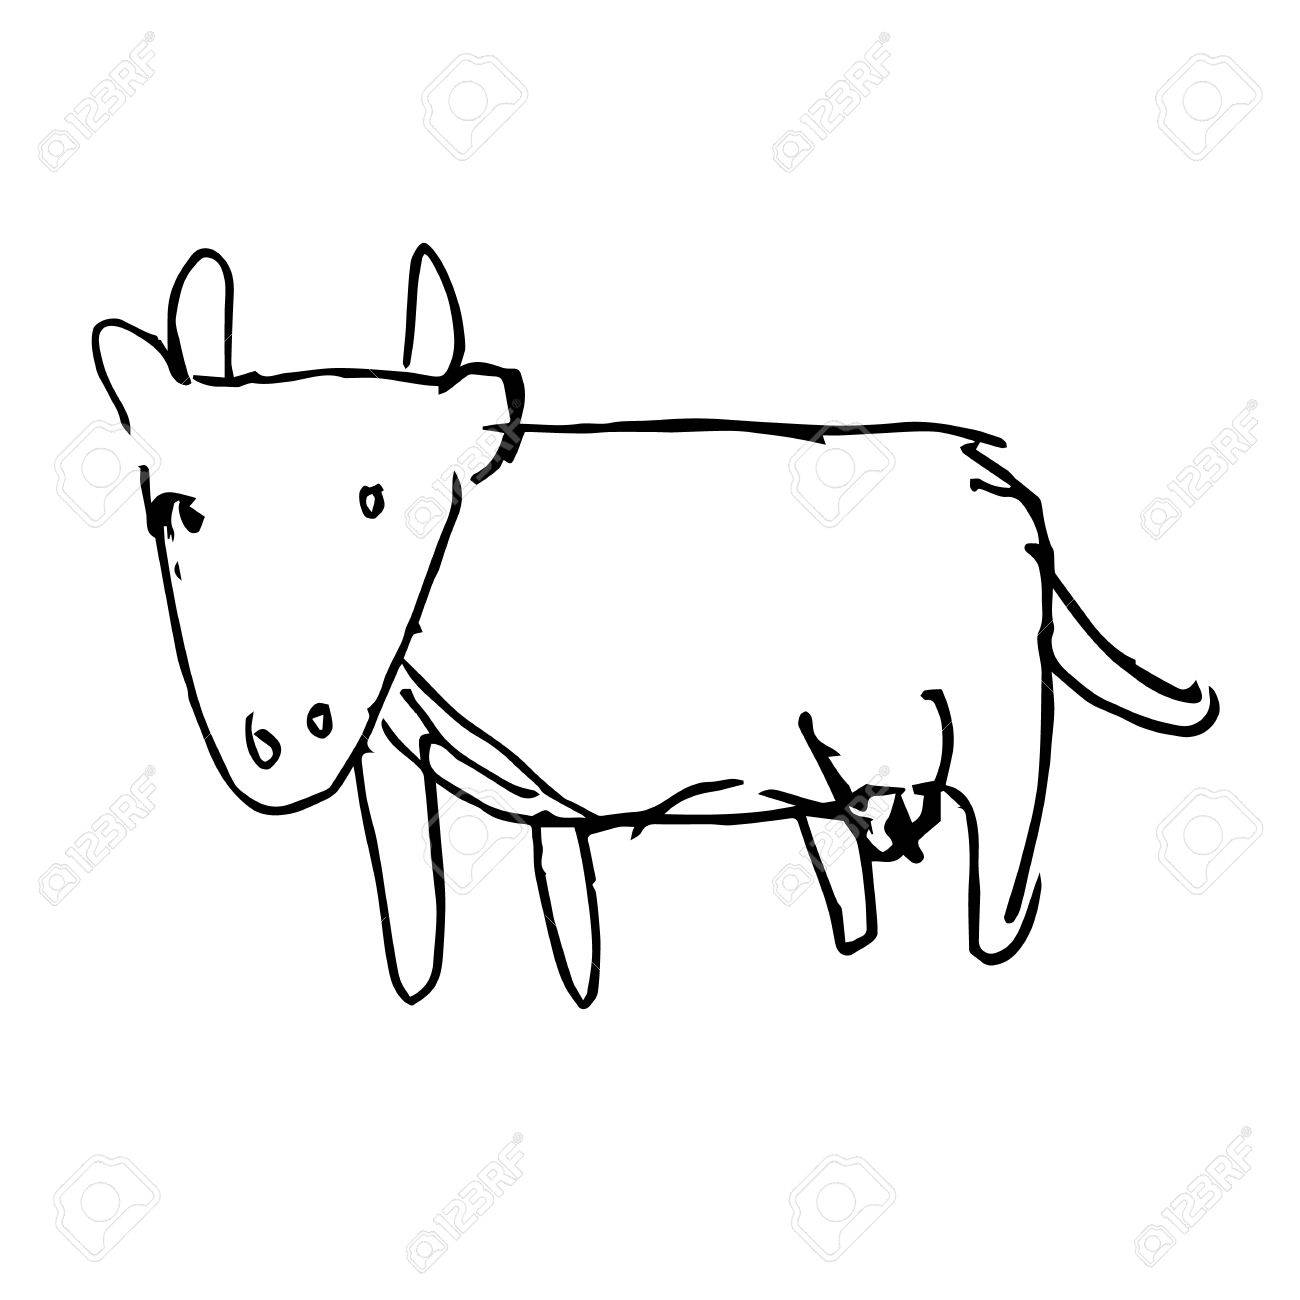 1300x1300 Freehand Sketch Illustration Of Cow Doodle Hand Drawn In Kid